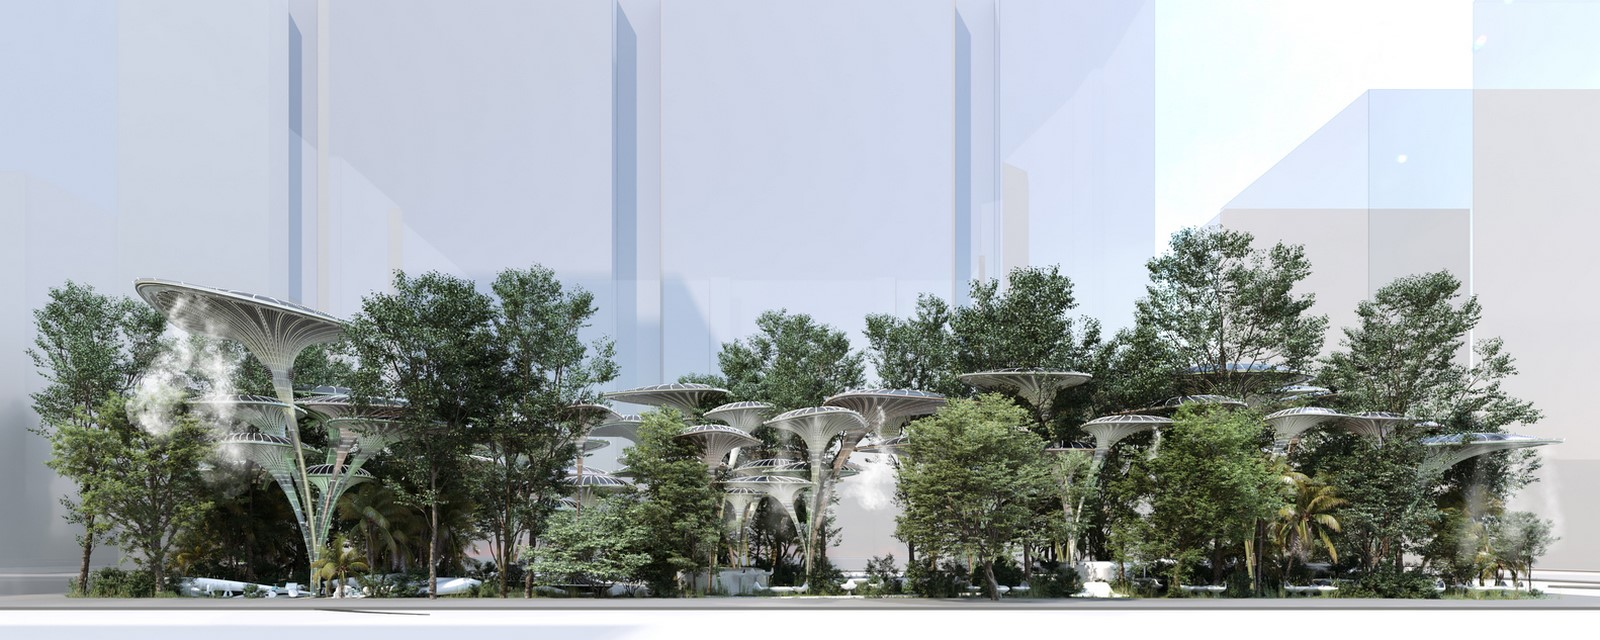 Cooling Stations for Abu Dhabi's Urban Heat Island designed by Mask Architects - Sheet1